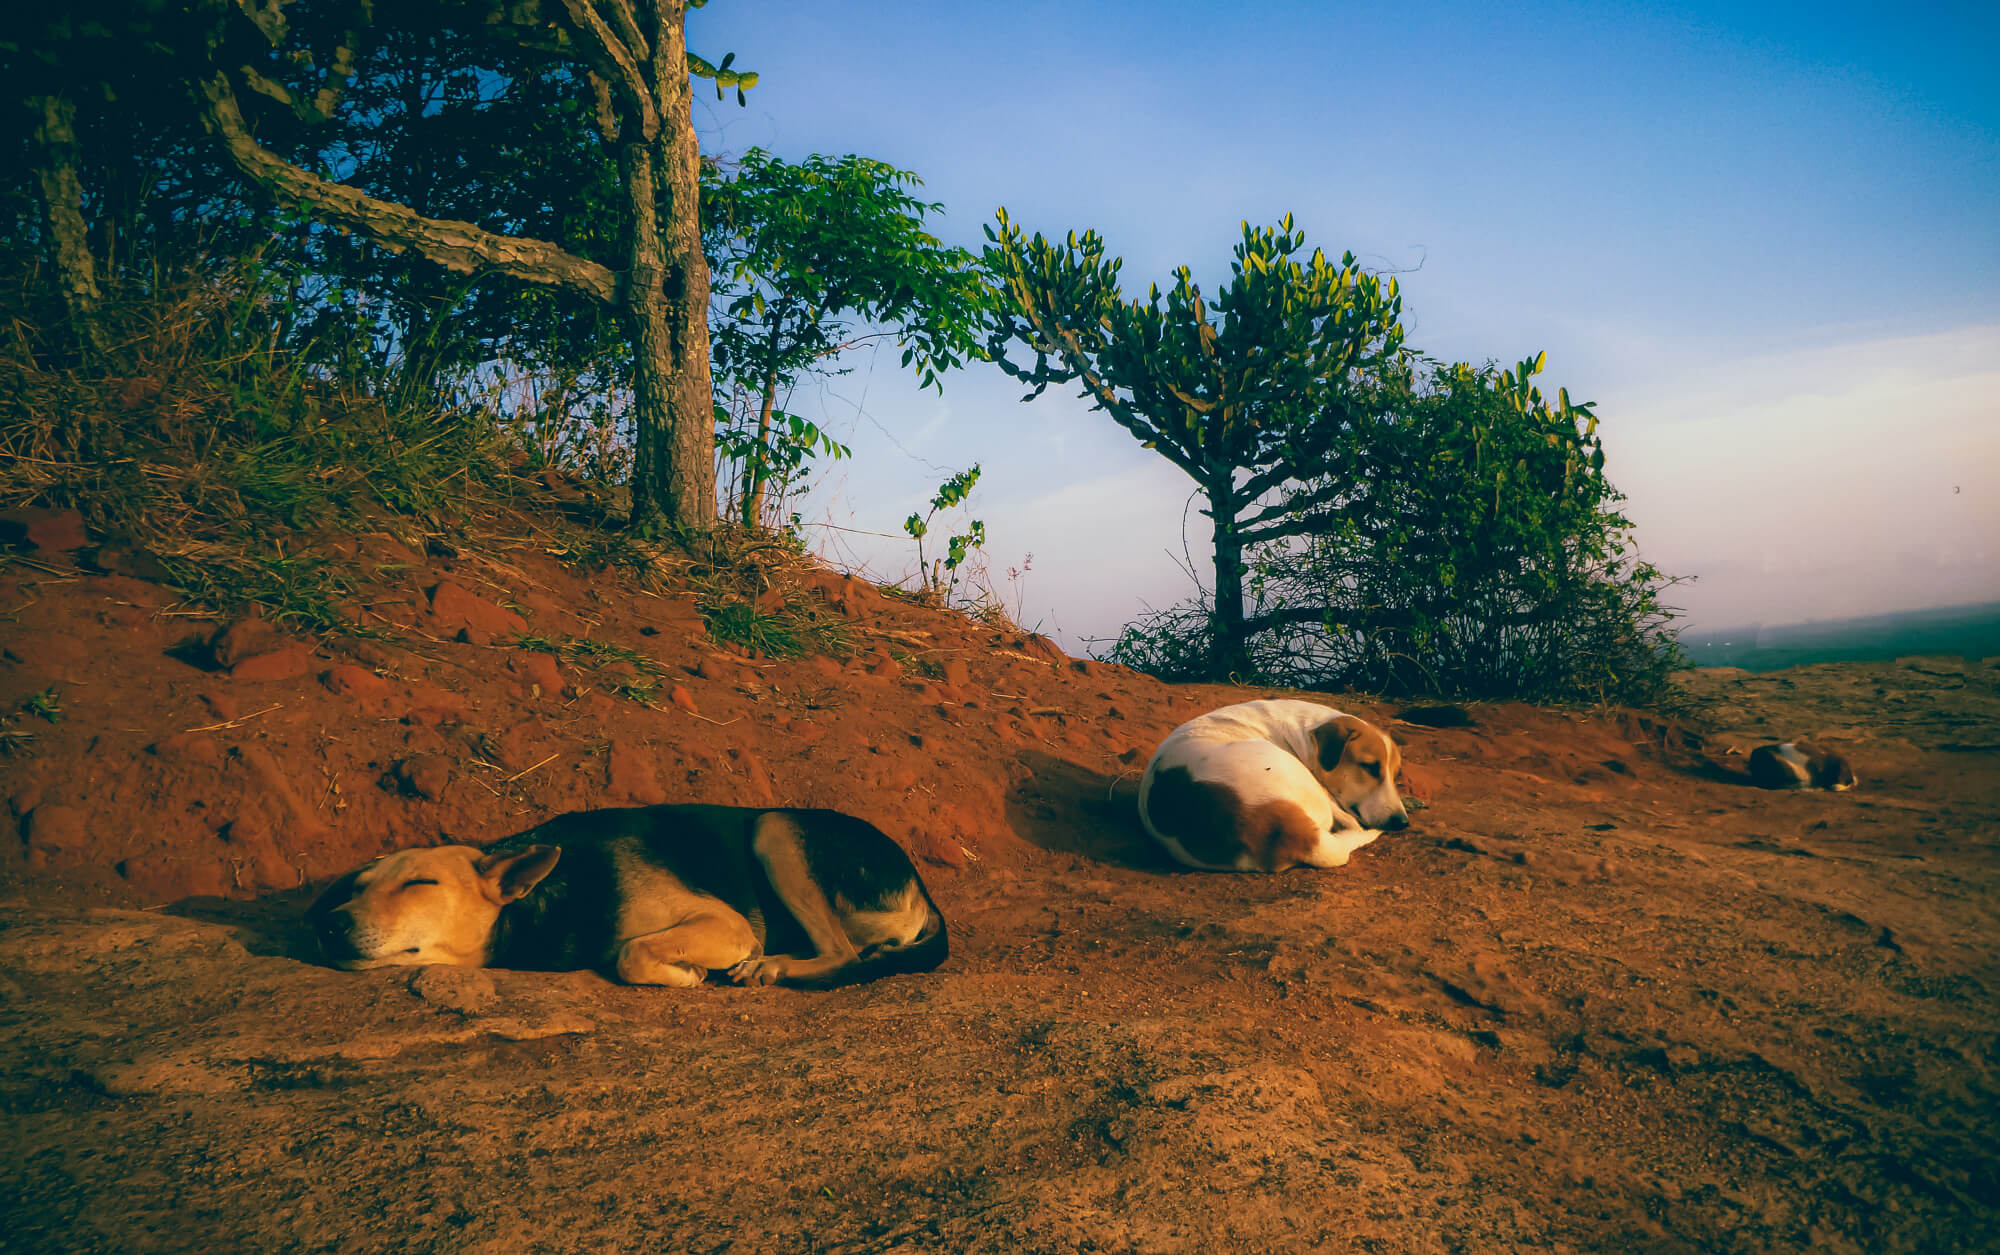 Some dogs napping after a tiring trip exploring Sri Lanka